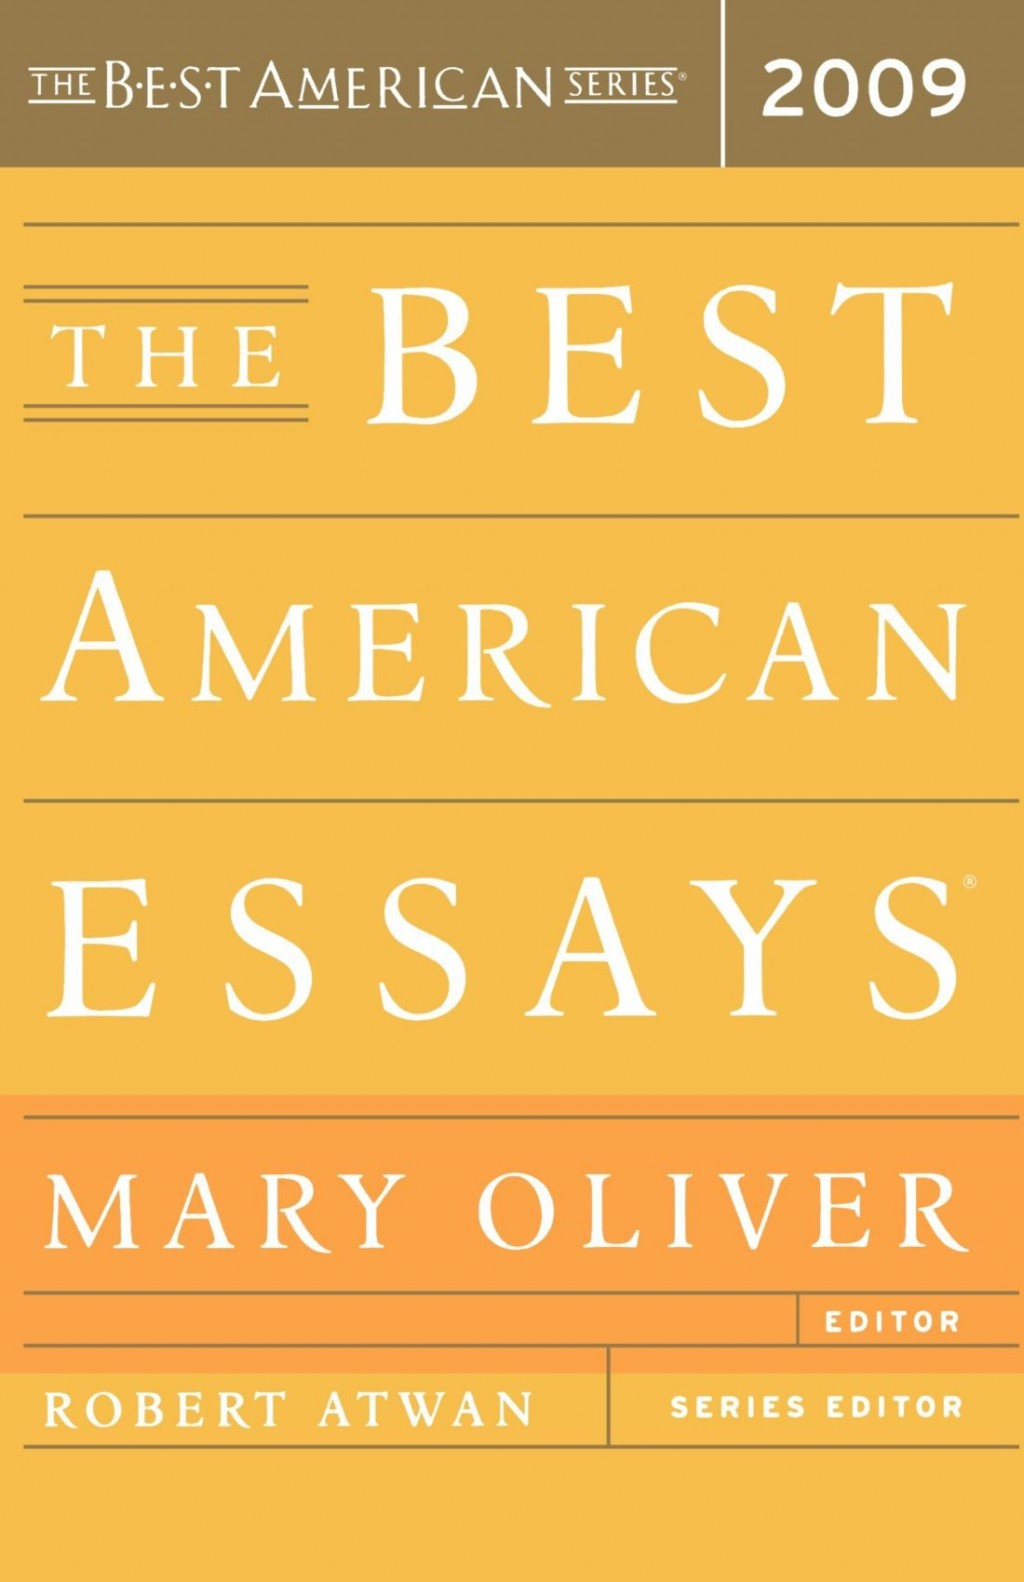 008 617qb5slhfl Essay Example The Best American Wonderful Essays Of Century Table Contents 2013 Pdf Download Large